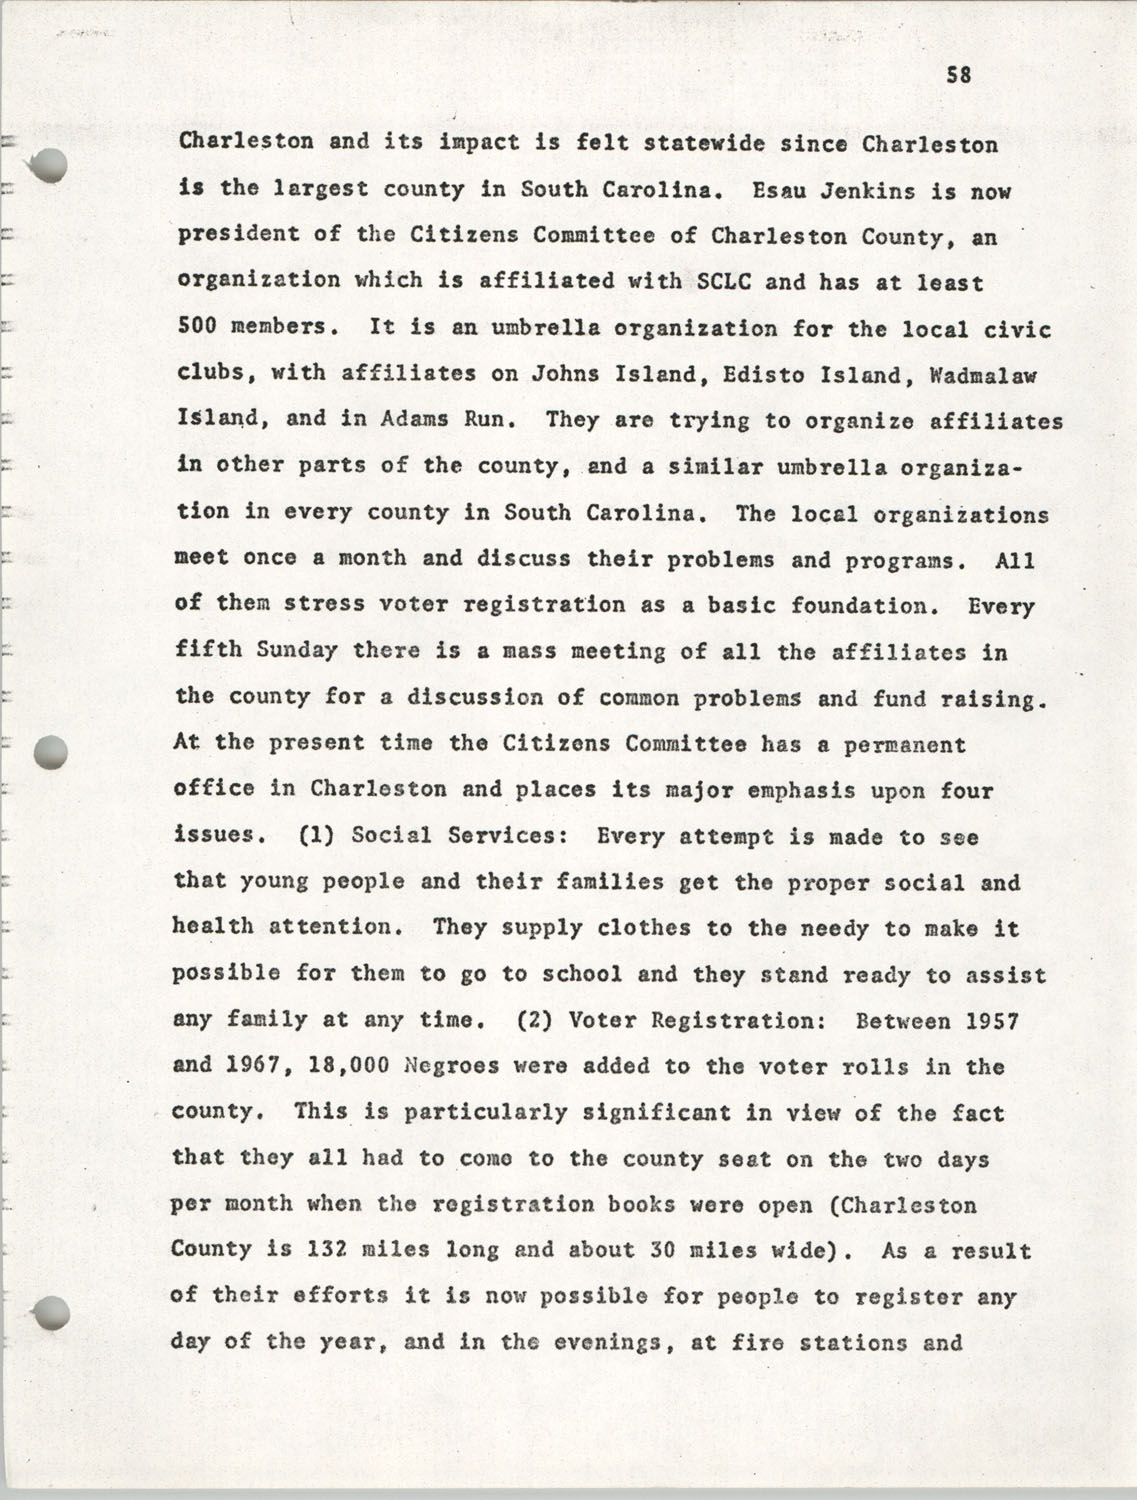 Citizen Participation. Democracy and Social Change, December 1, 1969, Page 58